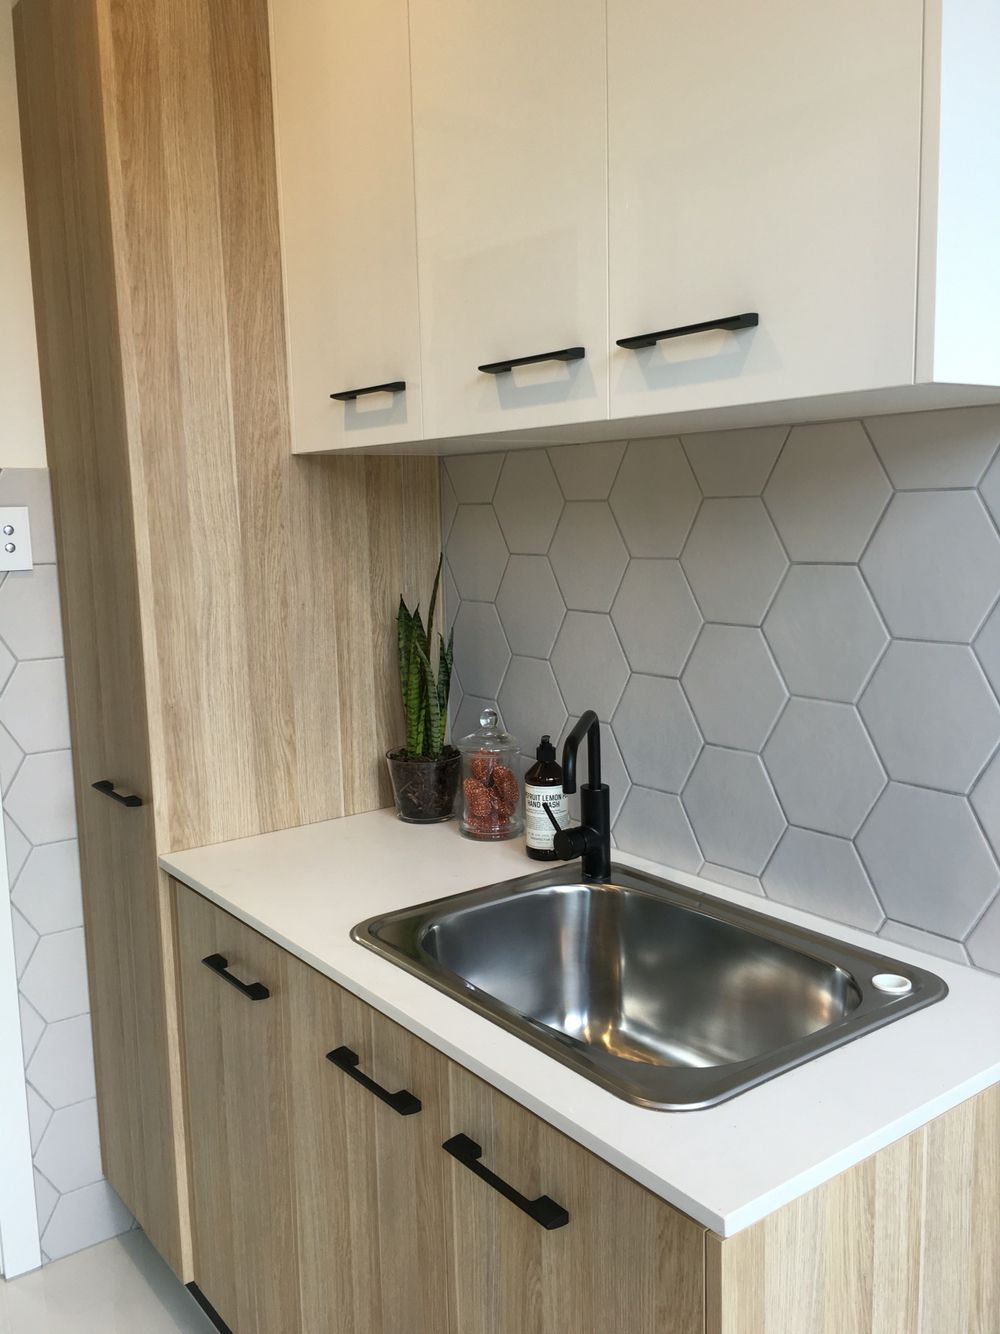 Brisbane laundry renovations laundry design ideas ine bathrooms - Nice And Simple For A Small Laundry Idea